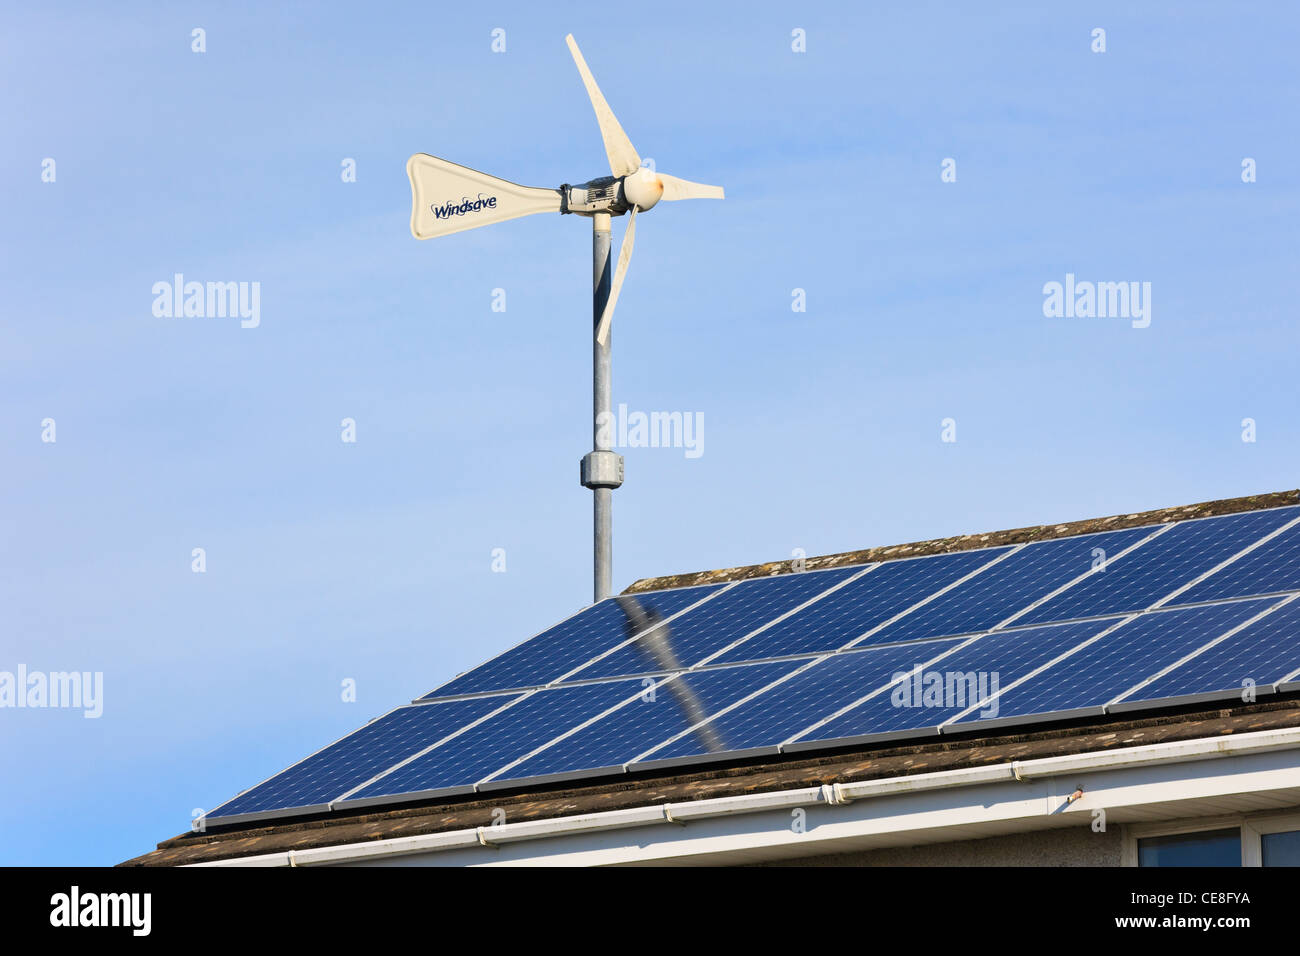 Windsave micro wind turbine and solar panels on a domestic eco home house roof for power generation with alternative - Stock Image